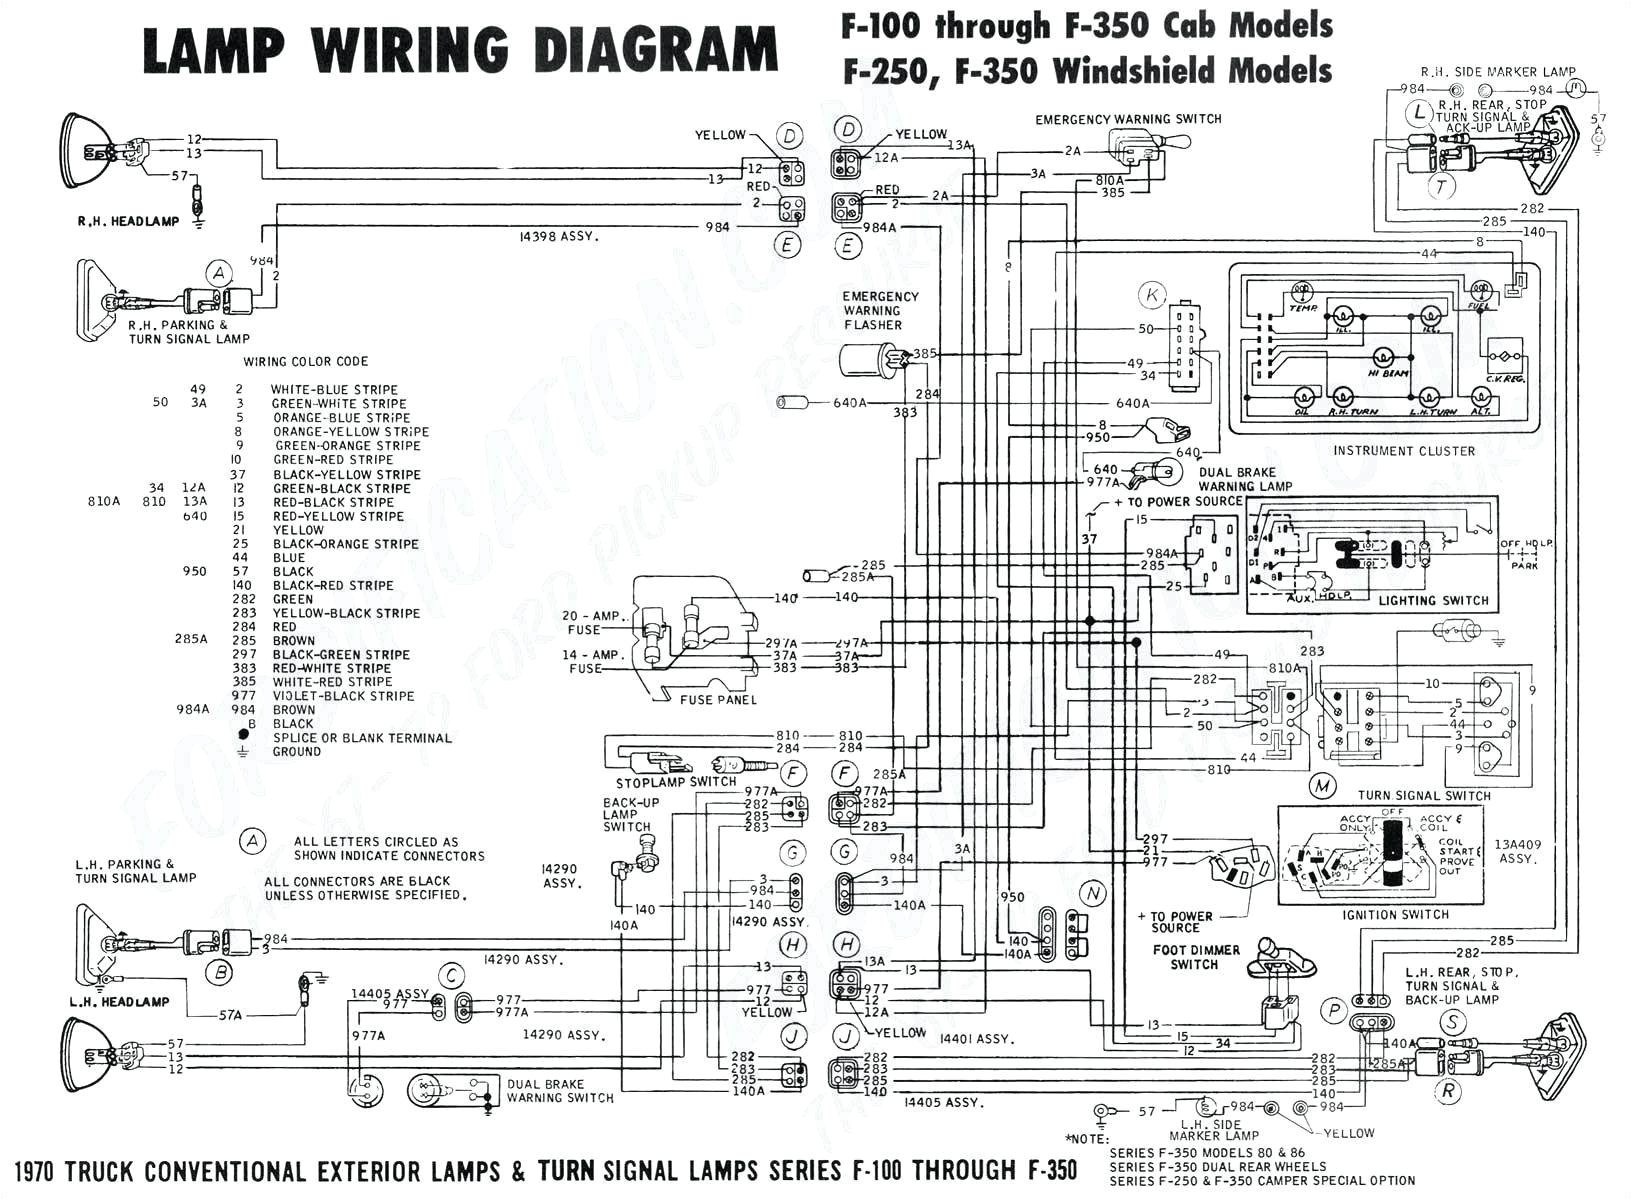 93 toyota corolla wiring diagram wiring diagram database here is a typical schematic diagram of the 2000 toyota tacoma blower